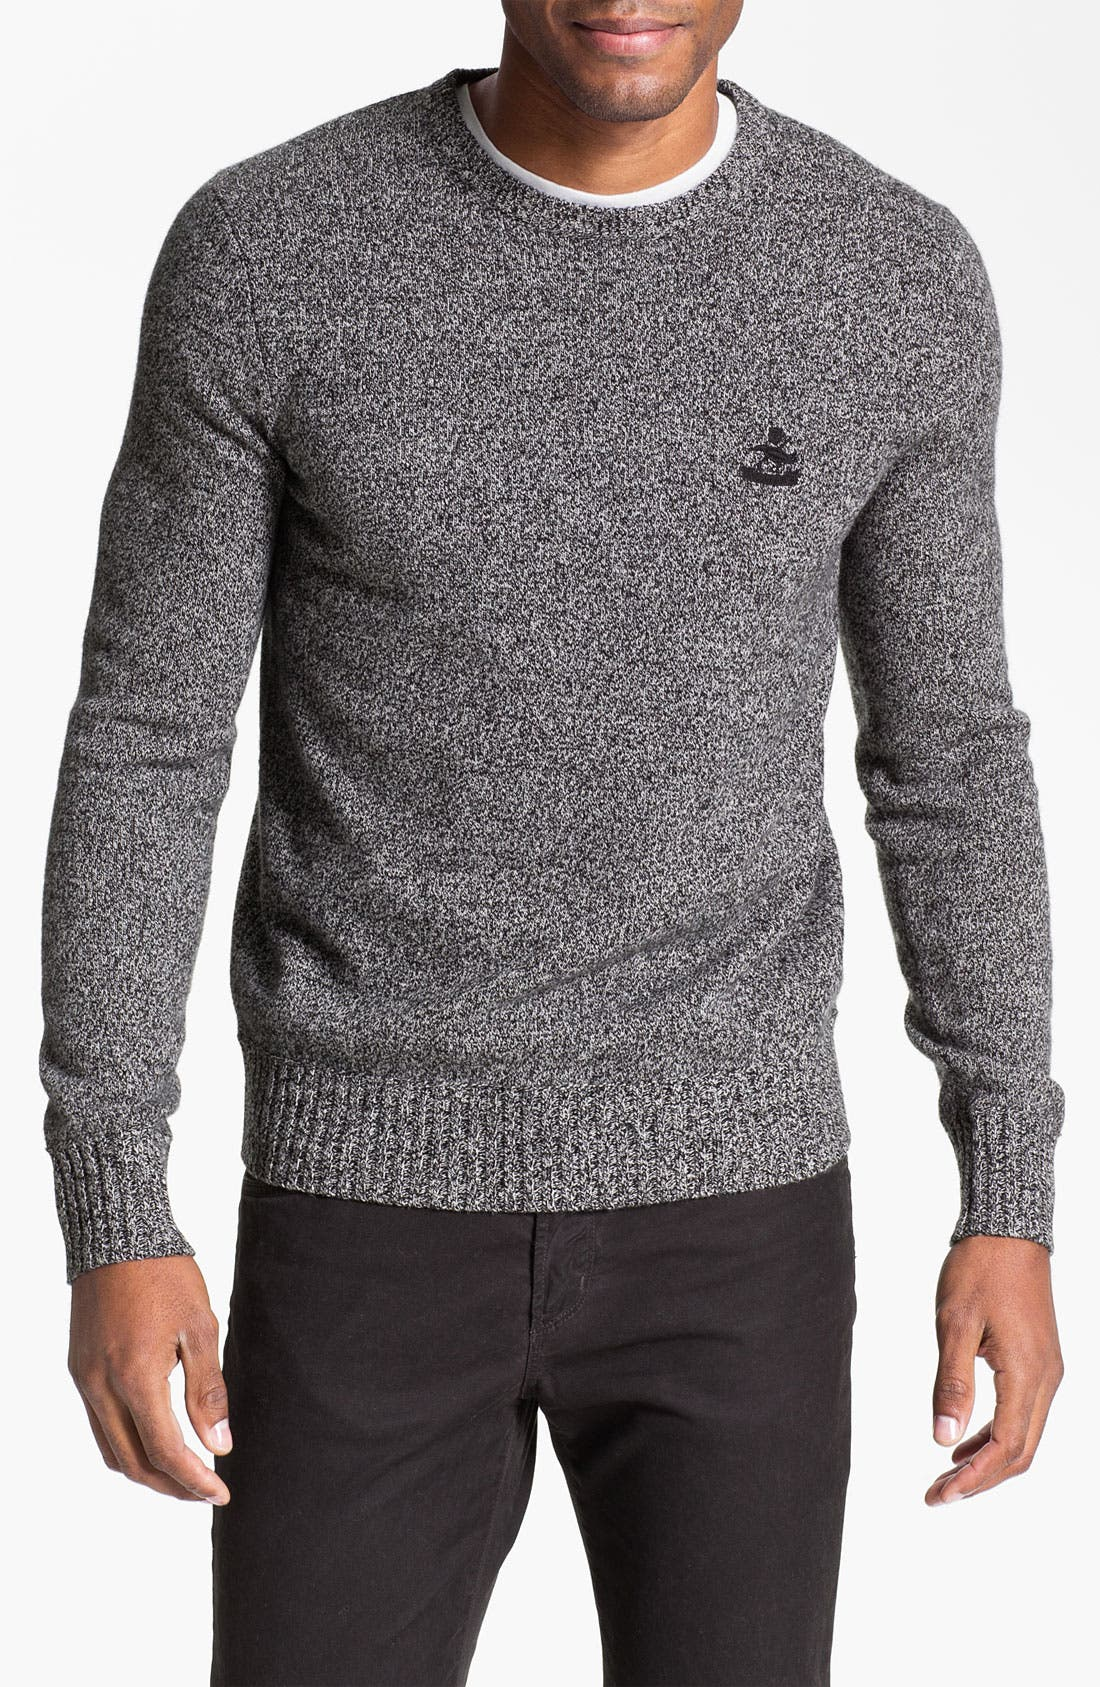 Main Image - Façonnable Wool Crewneck Sweater